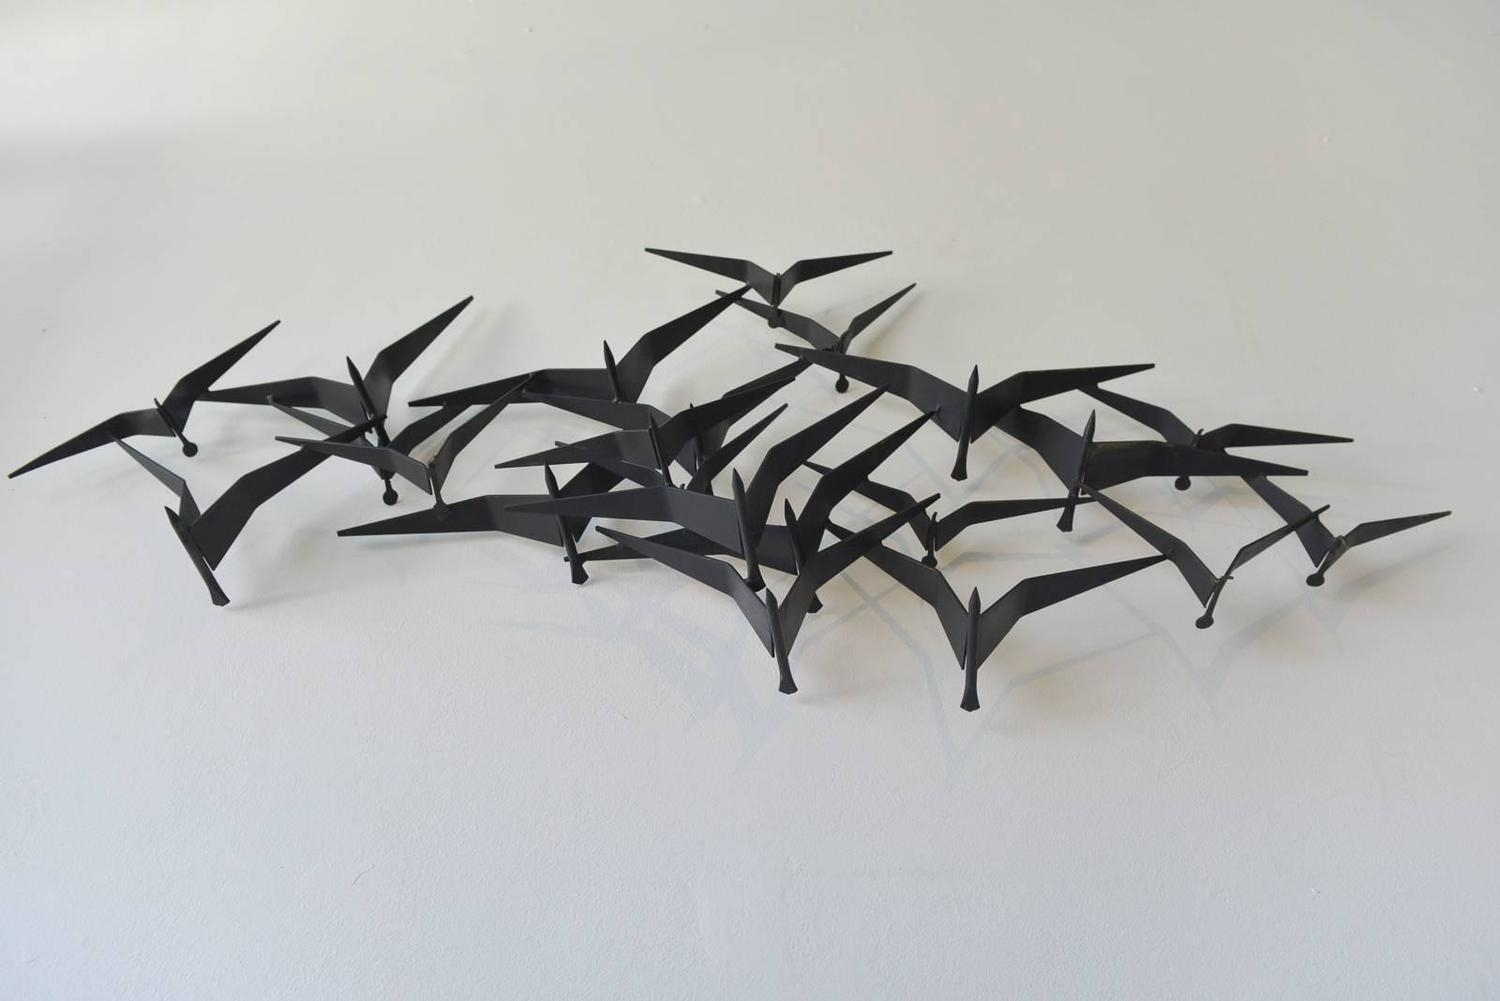 Fascinating Metal Wall Art Birds Trees Flying Birds Metal Wall Pertaining To Metal Wall Art Birds In Flight (View 5 of 20)